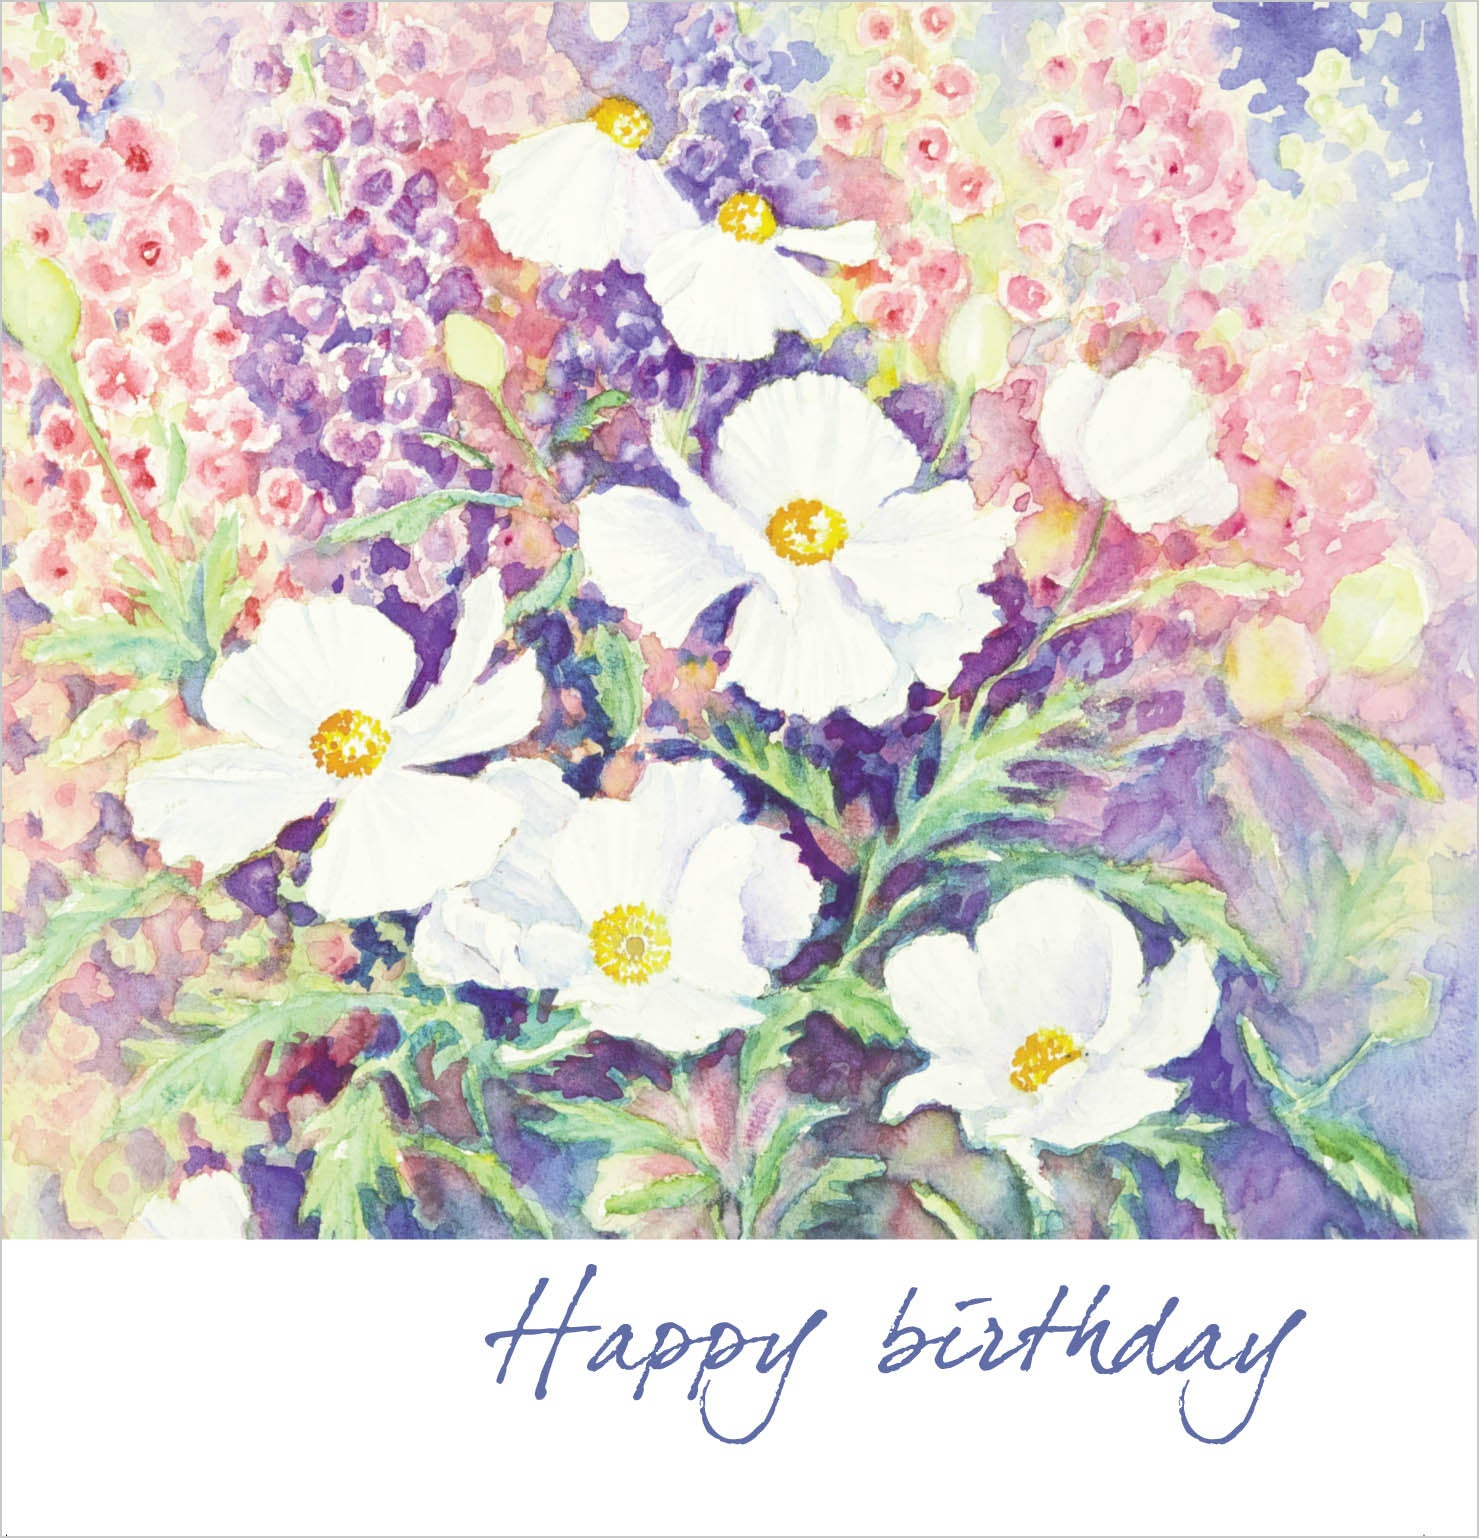 Happy Birthday - Square Card - TexturedHappy Birthday - Square Card - Textured